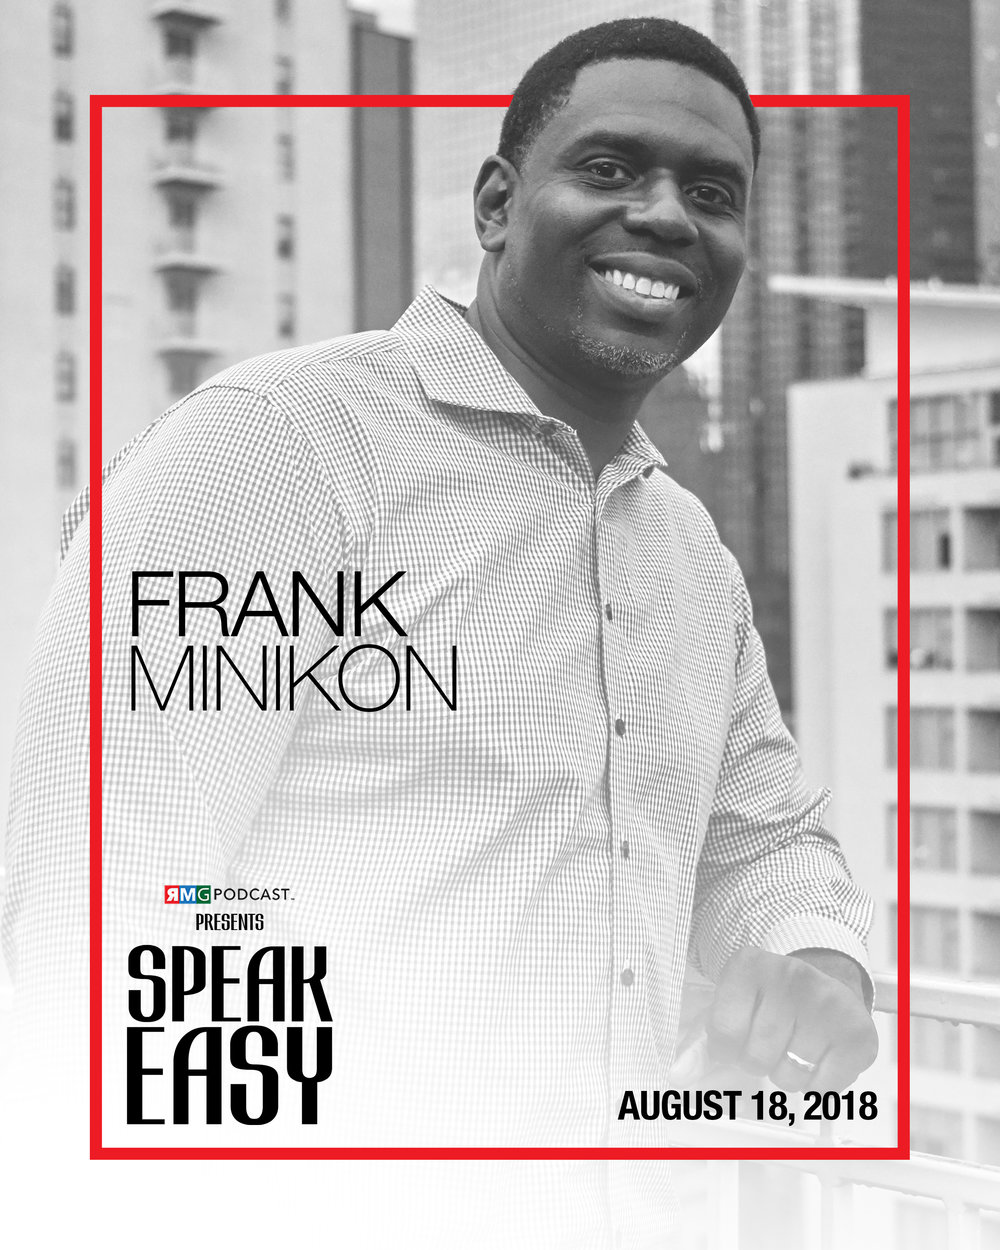 Panelist. - Frank Minikon considers himself a conversationalist of the highest order, and communication is certainly one of his strengths. He is the co-host of the Quad Podcast (QuadCast) under the umbrella of Roberts Media Group and enjoys providing great content and discussions for their listeners.He is also part owner of the Global Publishing Company, Melanin Origins. They publish childrens' books with African American leaders as characters and tell a snippet of their lives for children ages 7 and under.He is a father of two children, Zair 9 and Morgan 7, and have been married for 12 years to his beautiful Queen Markena, so of course he's an expert in relationships right???